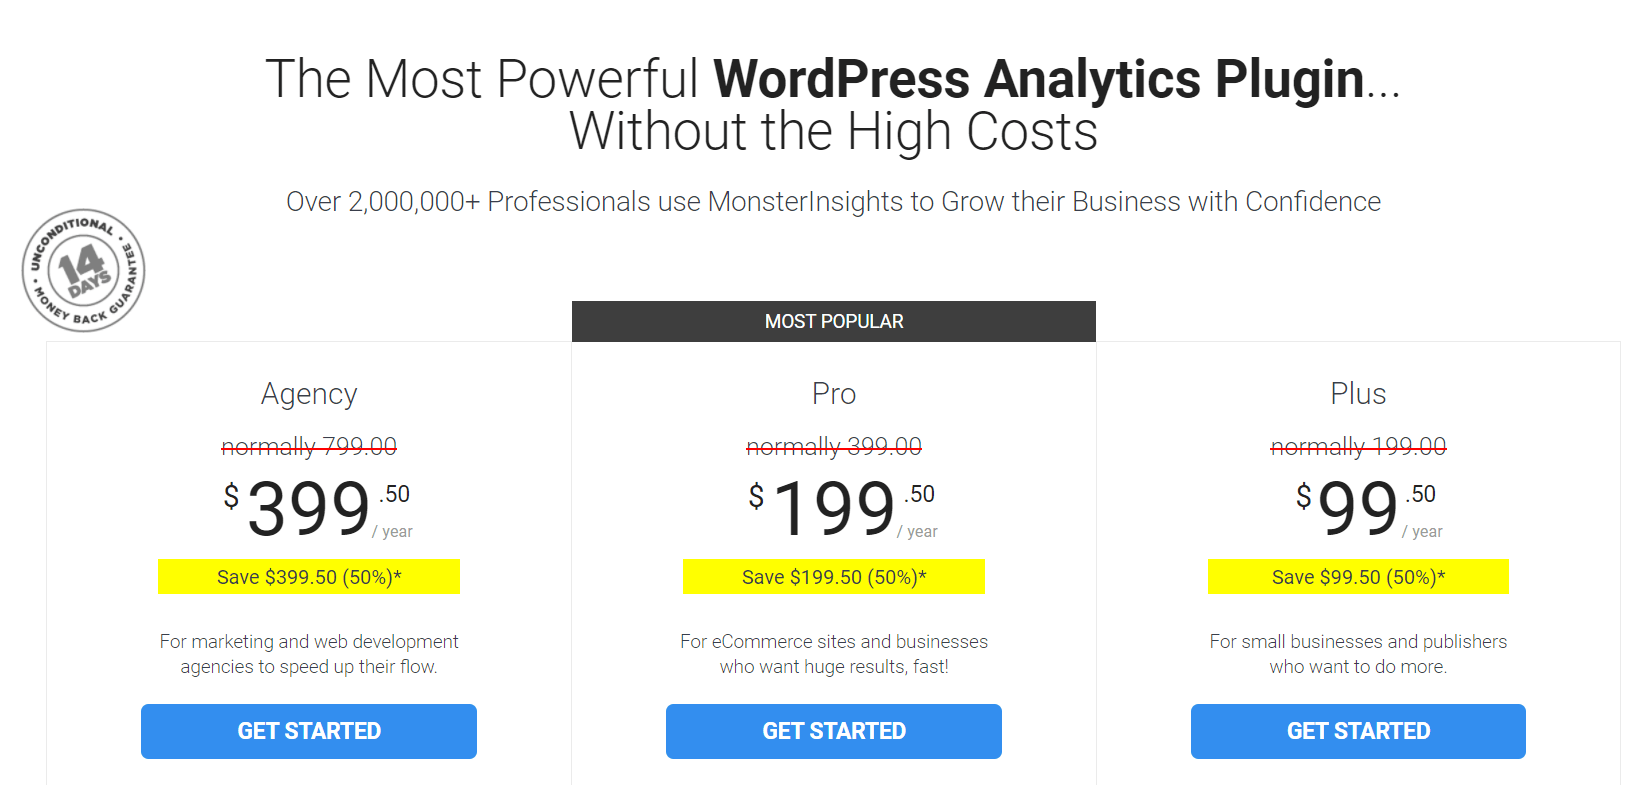 monsterinsights pricing plans